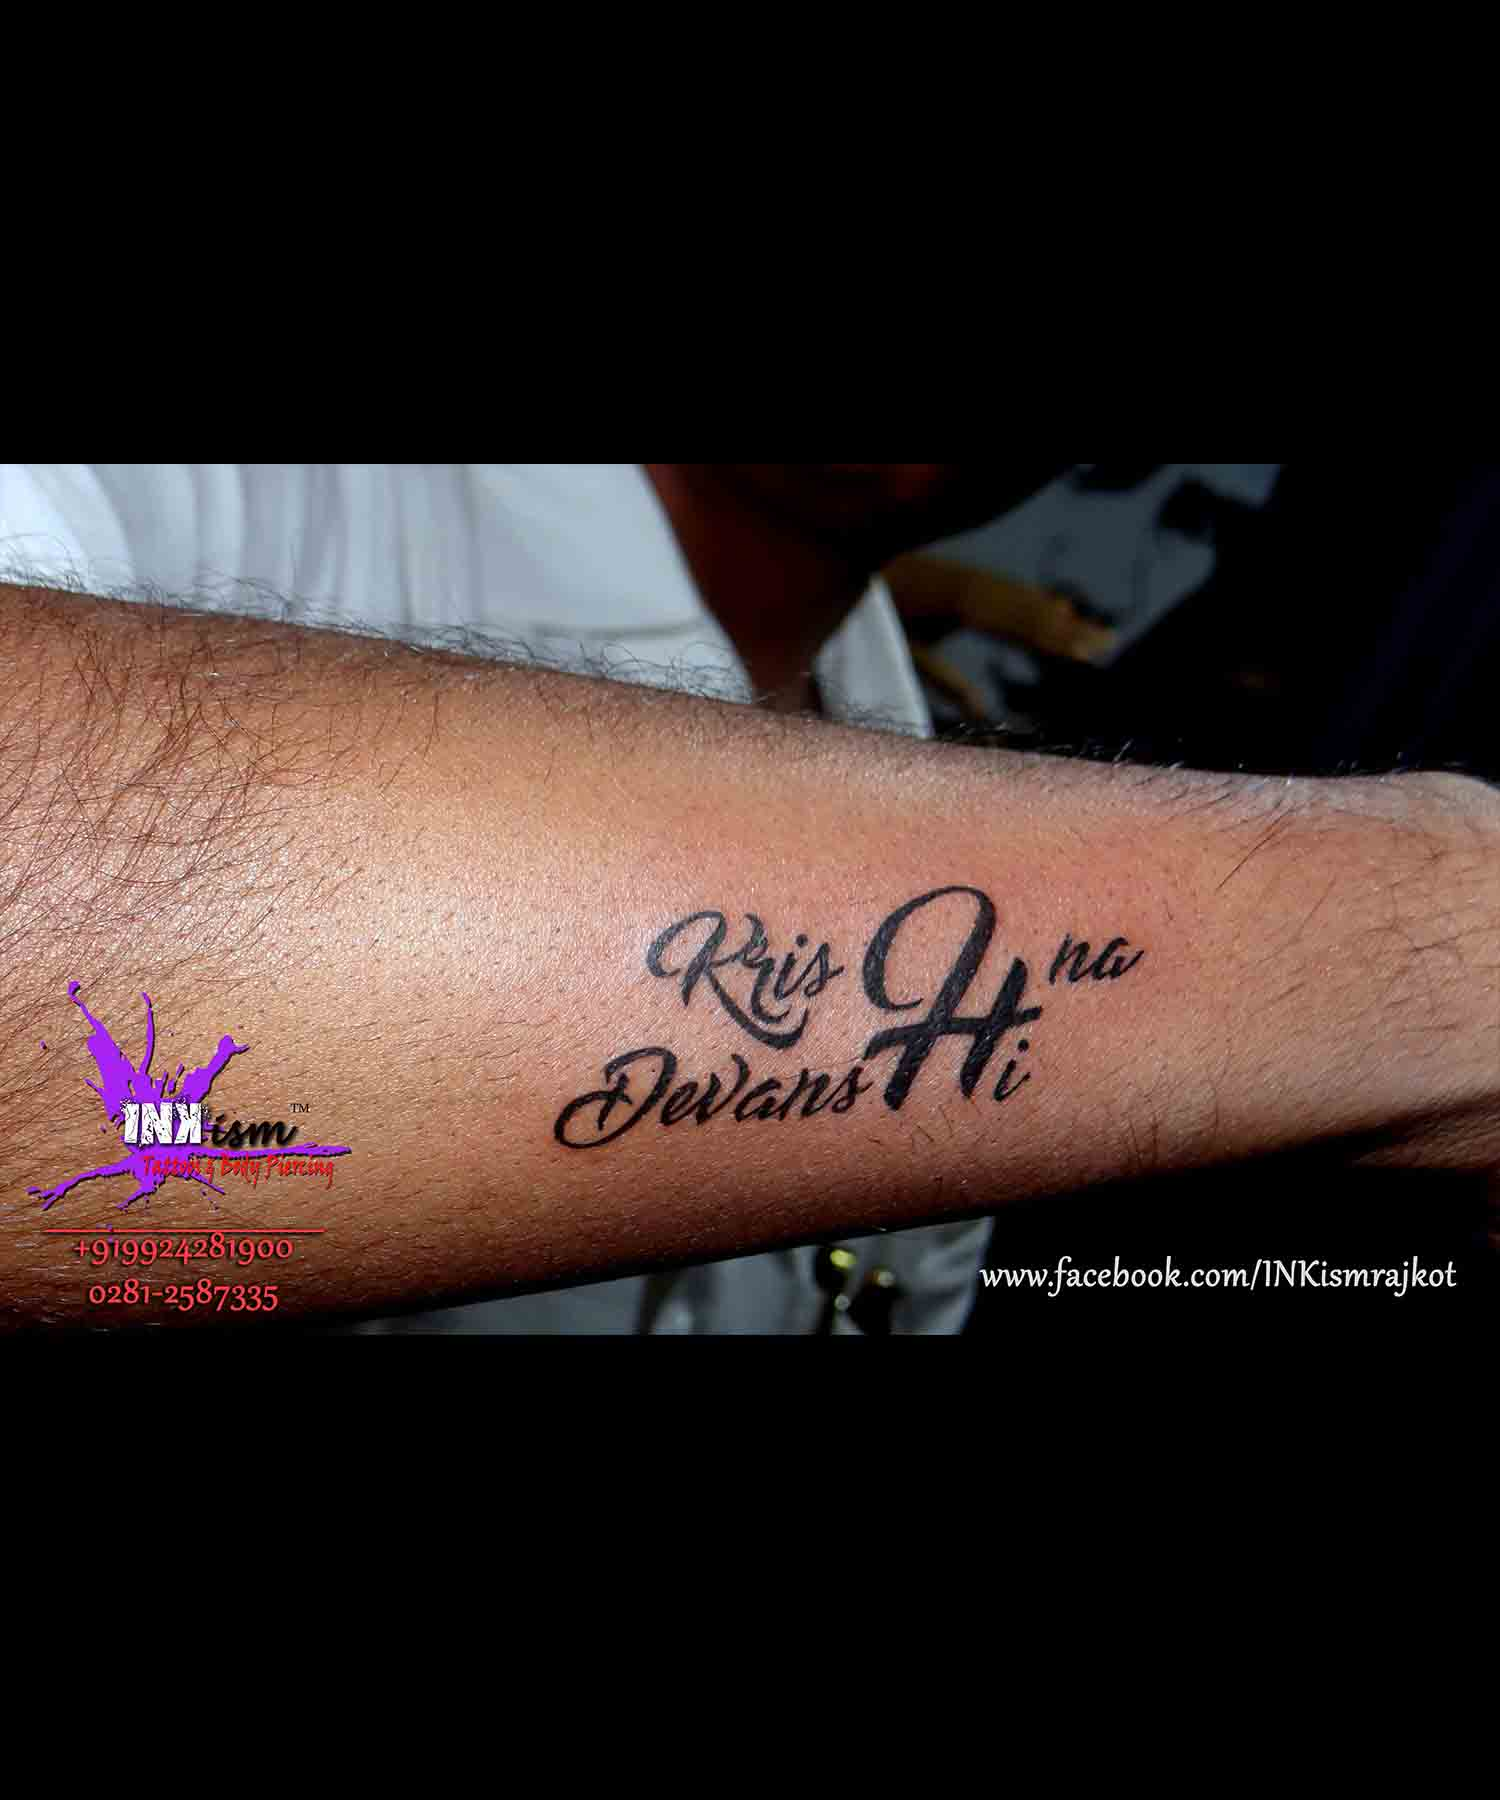 calligraphy name tattoo, Daughter and father tattoo, Calligraphy tattoo, Inkism tattoo and body piercing rajkot gujarat